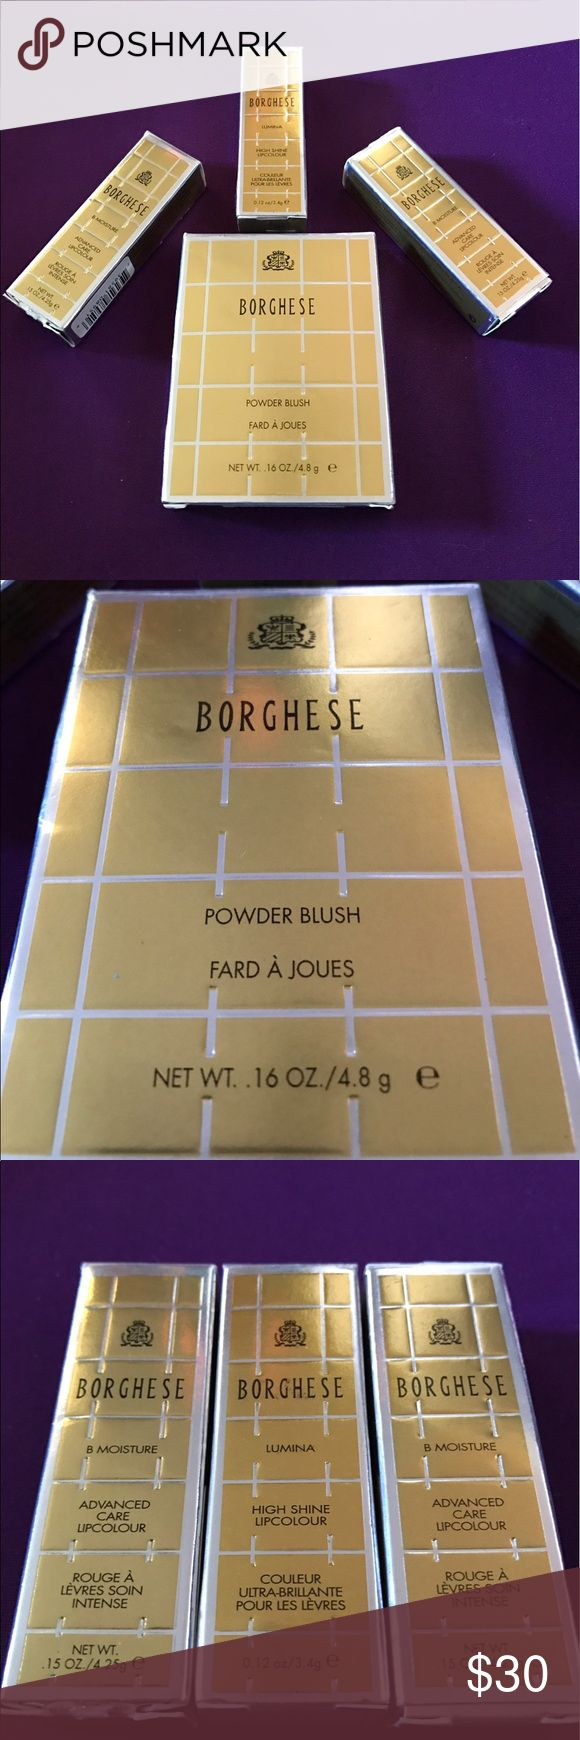 Borghese Makeup Package New in the box Borghese Blush and 3 lipsticks. The blush is rosa brilliante and the lipsticks include 2 carnevale red (advanced care) and 1 dolce vita pink (high gloss). Great makeup set for a great price. Borghese Makeup